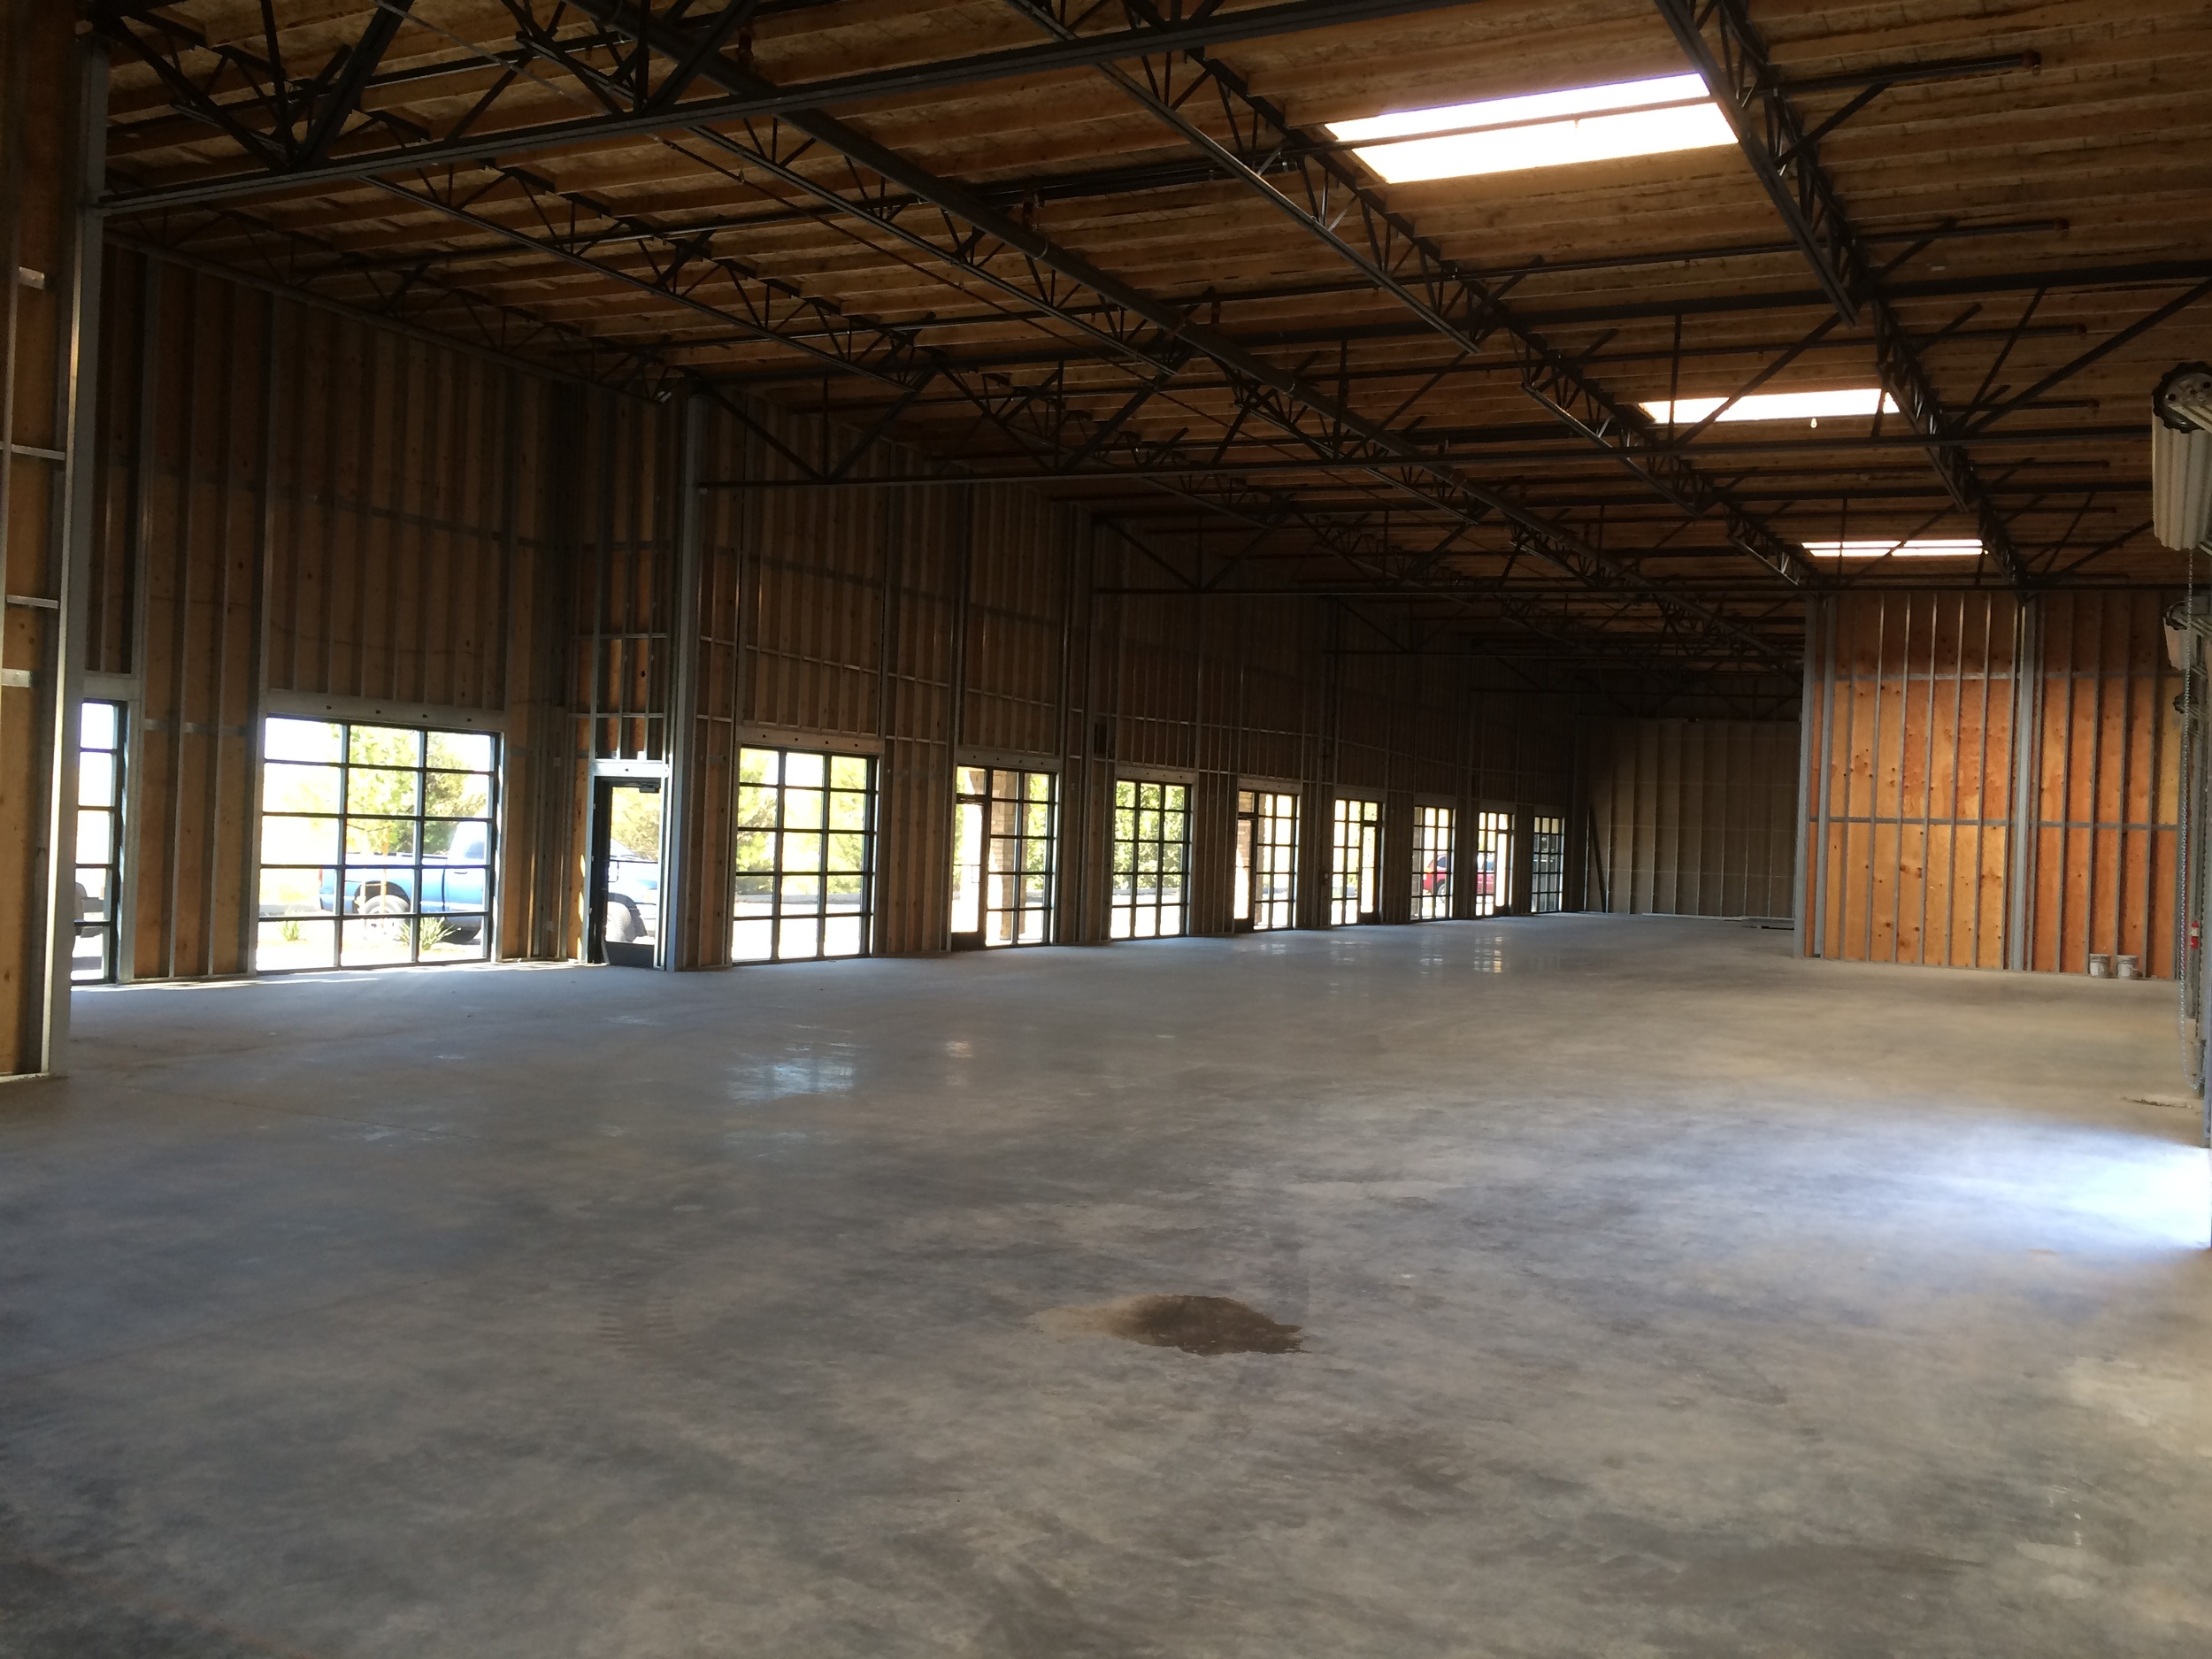 The new Mraz Brewing Company brewery and barrel-aging facility in El Dorado Hills.